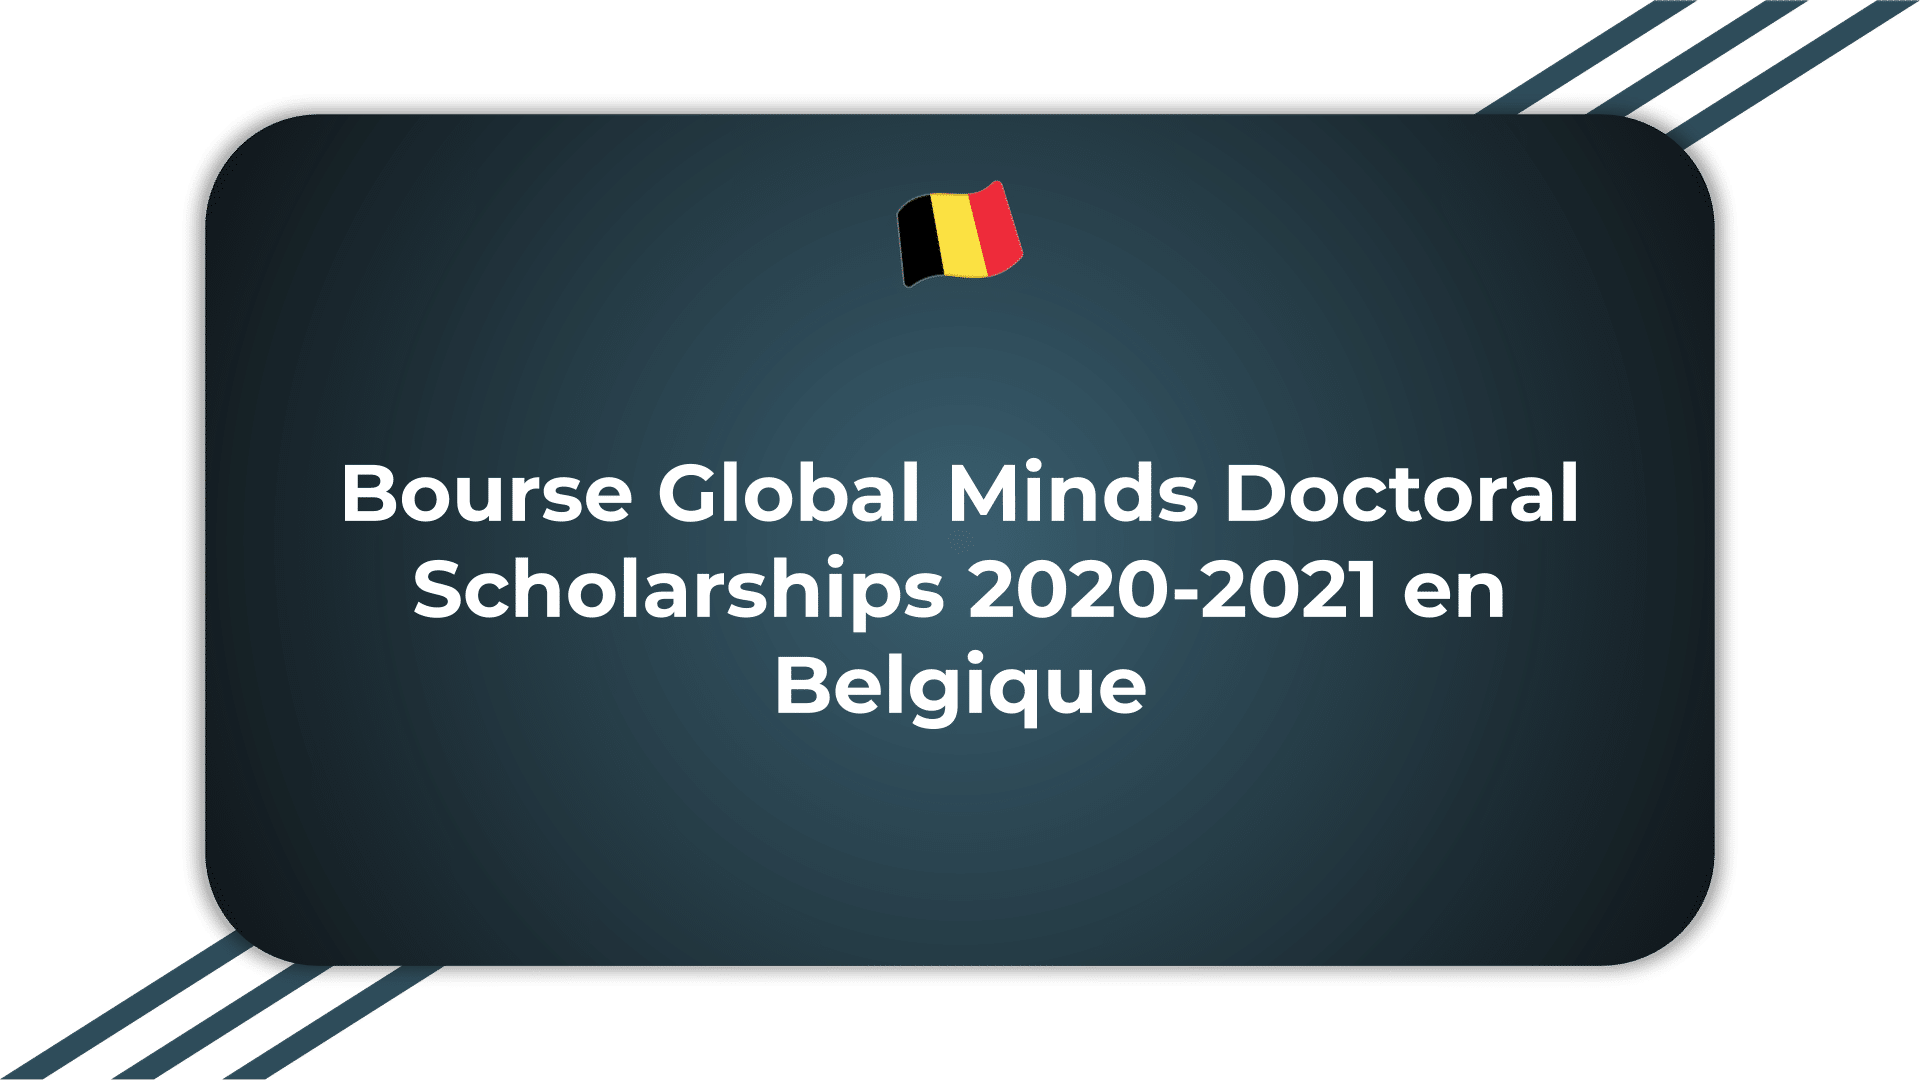 Bourse Global Minds Doctoral Scholarships